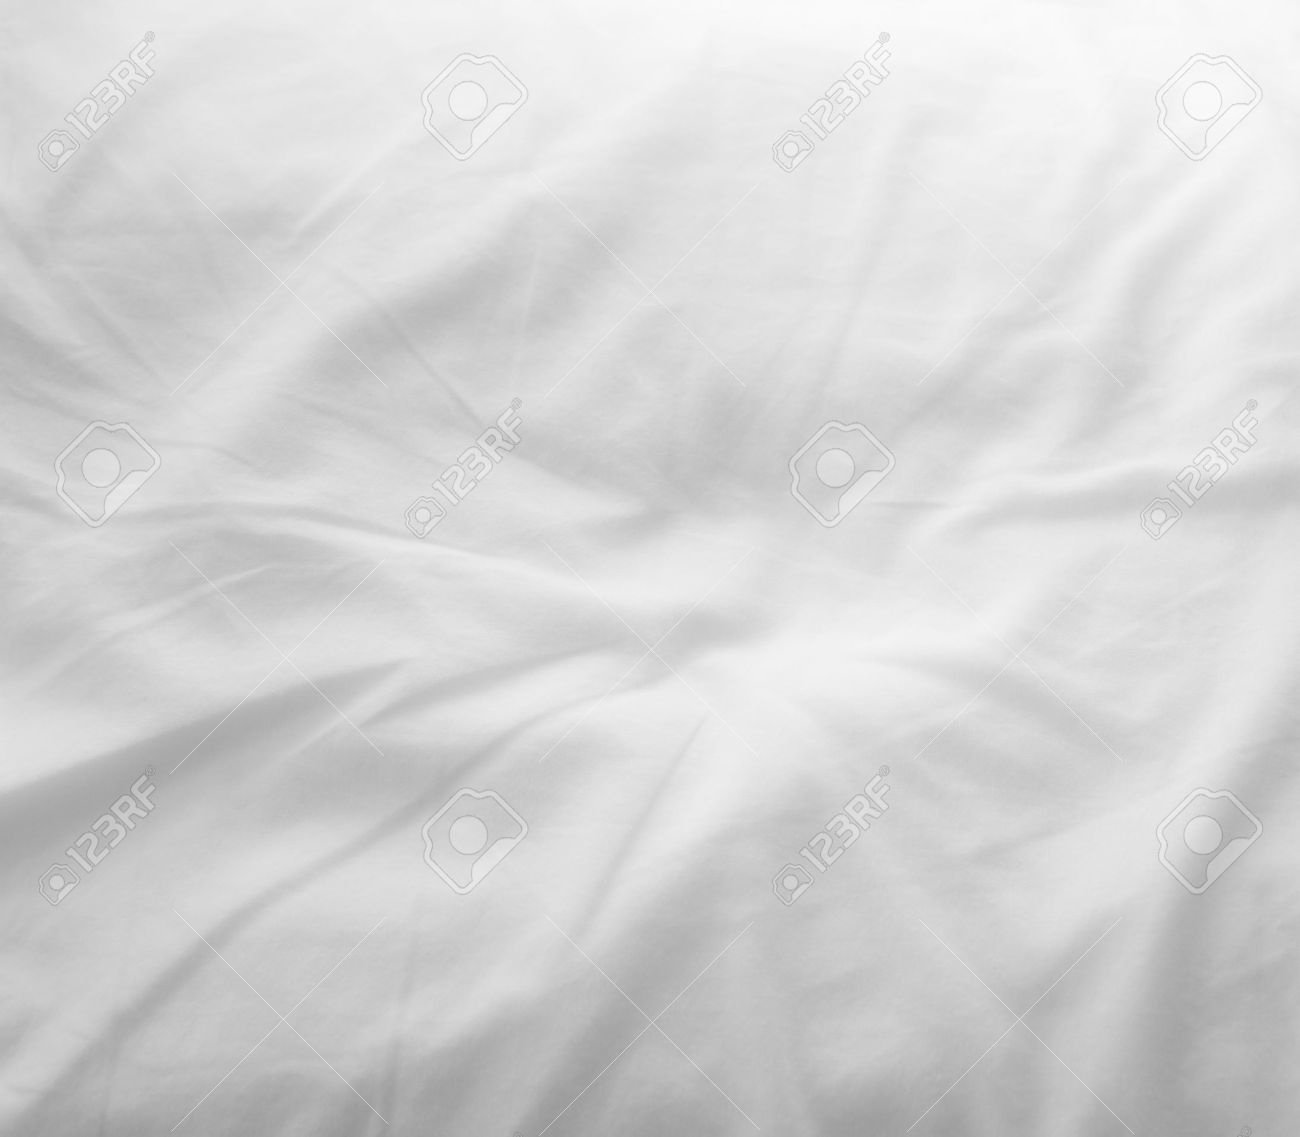 White bed sheets background Room Service Menu Soft White Bed Sheets Background Stock Photo 36495610 123rfcom Soft White Bed Sheets Background Stock Photo Picture And Royalty